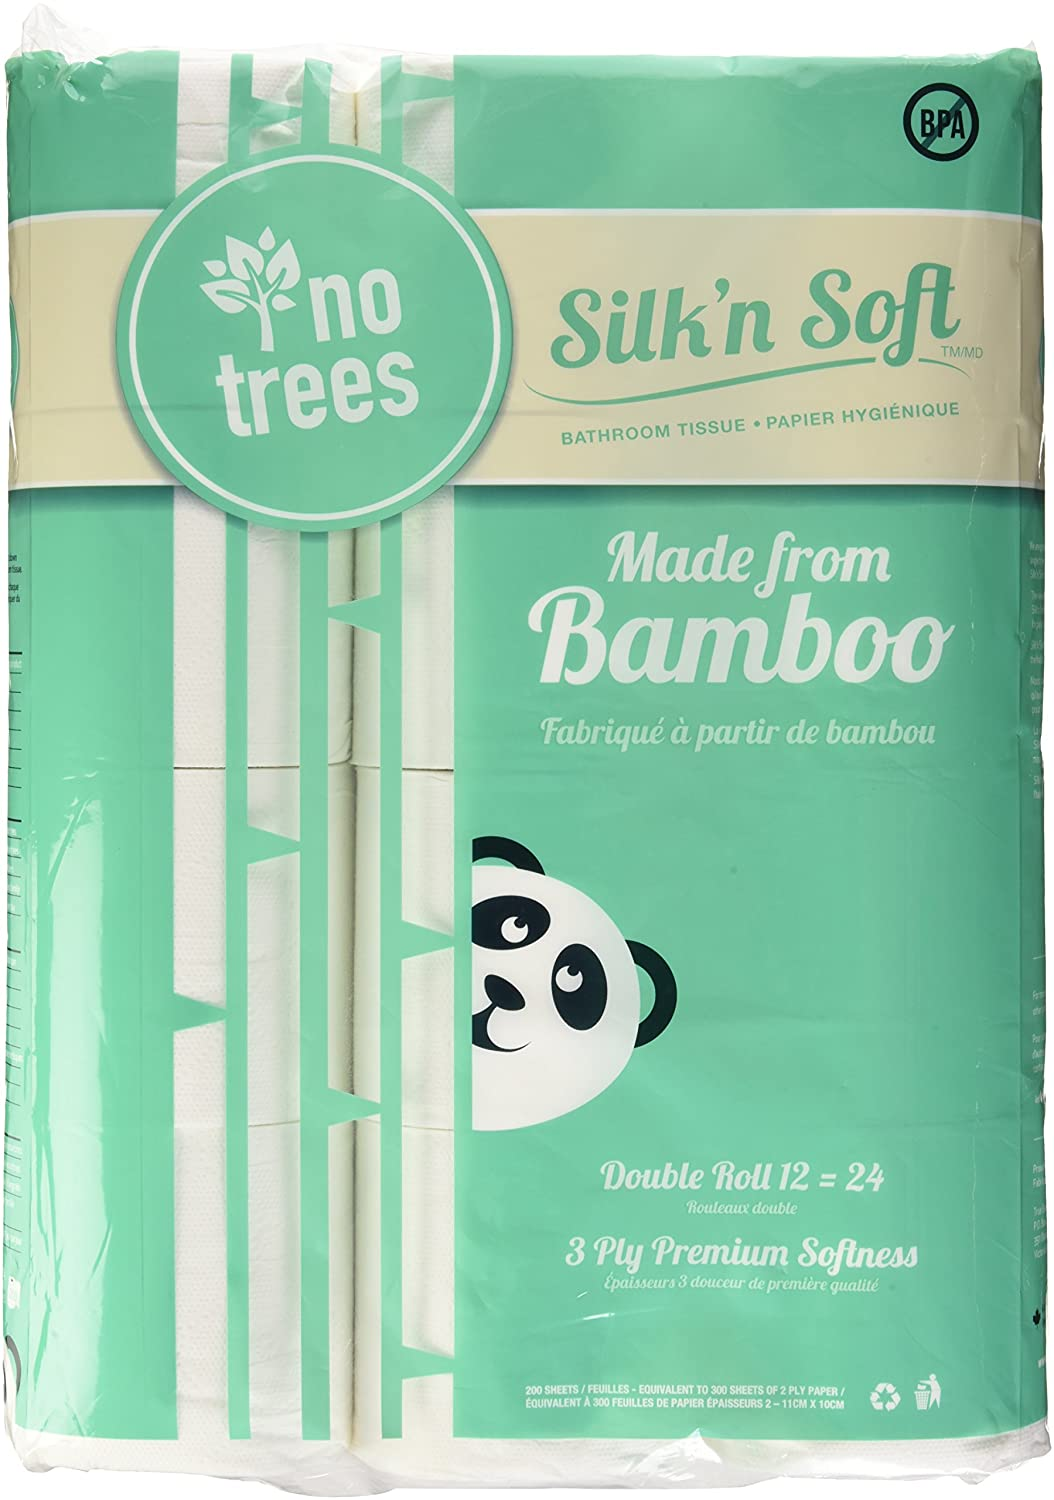 Silk'n Soft Bamboo Toilet Paper